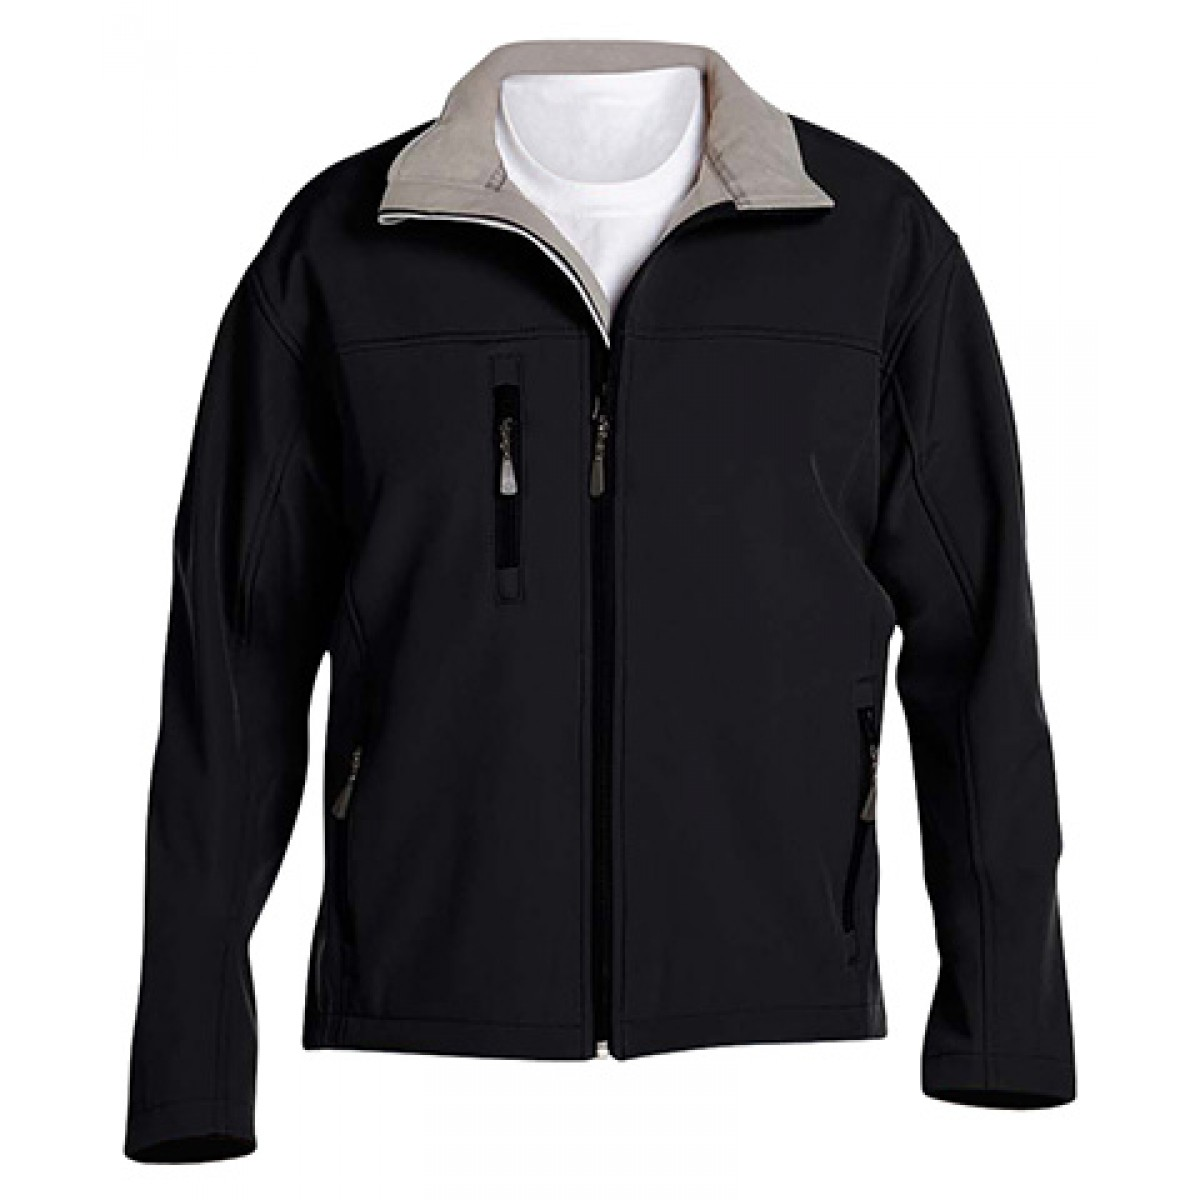 Men's Soft Shell Jacket-Black-4XL